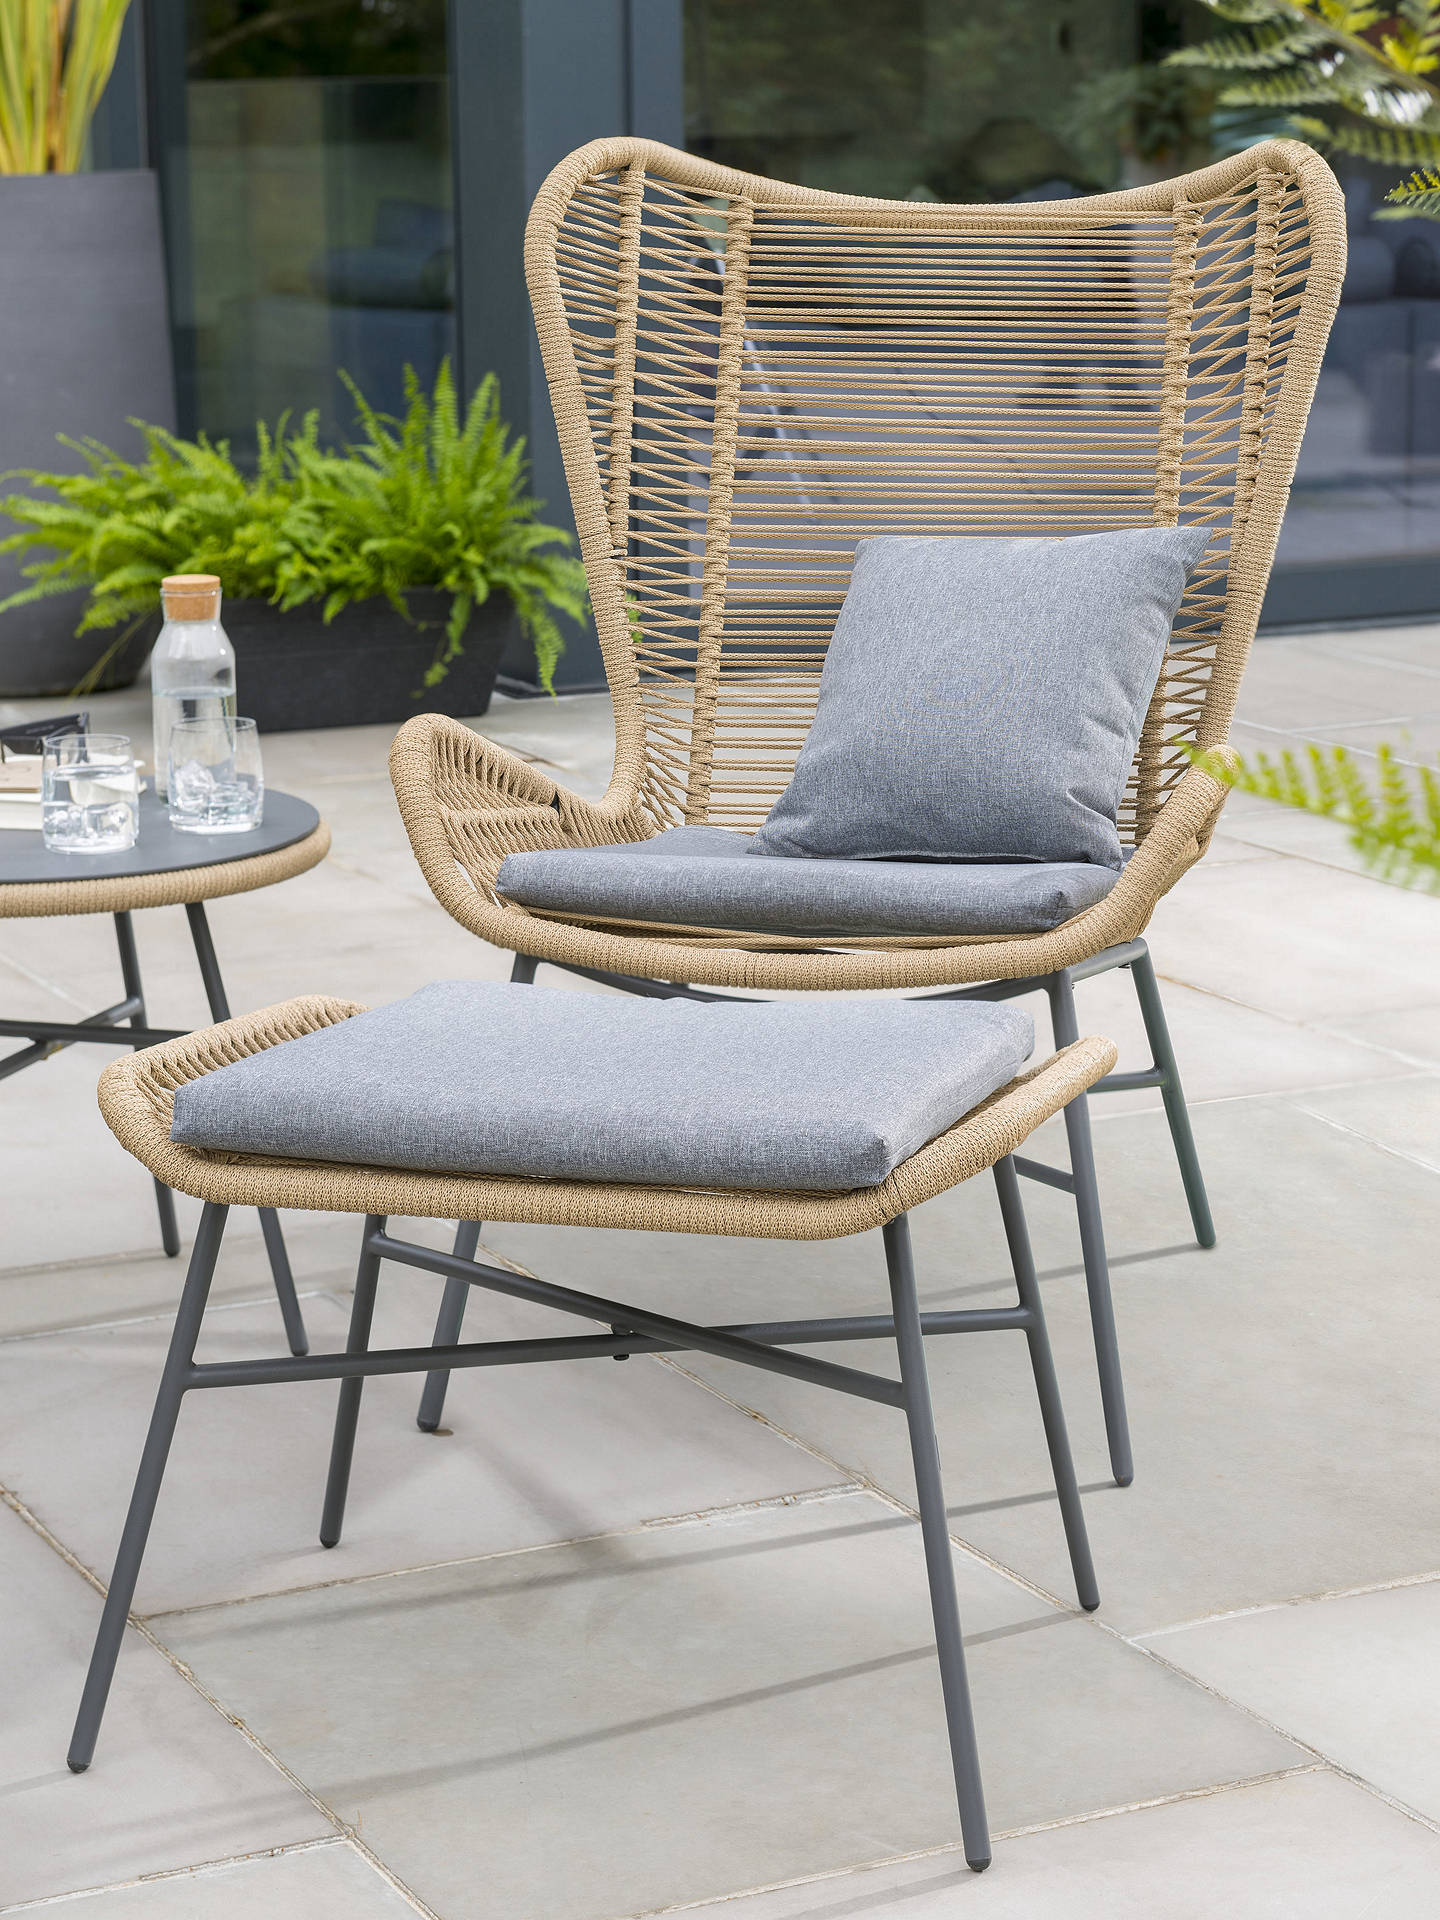 Buy KETTLER Lyon 2-Seater Garden Lounging Side Table & Chairs Set, Natural Online at johnlewis.com